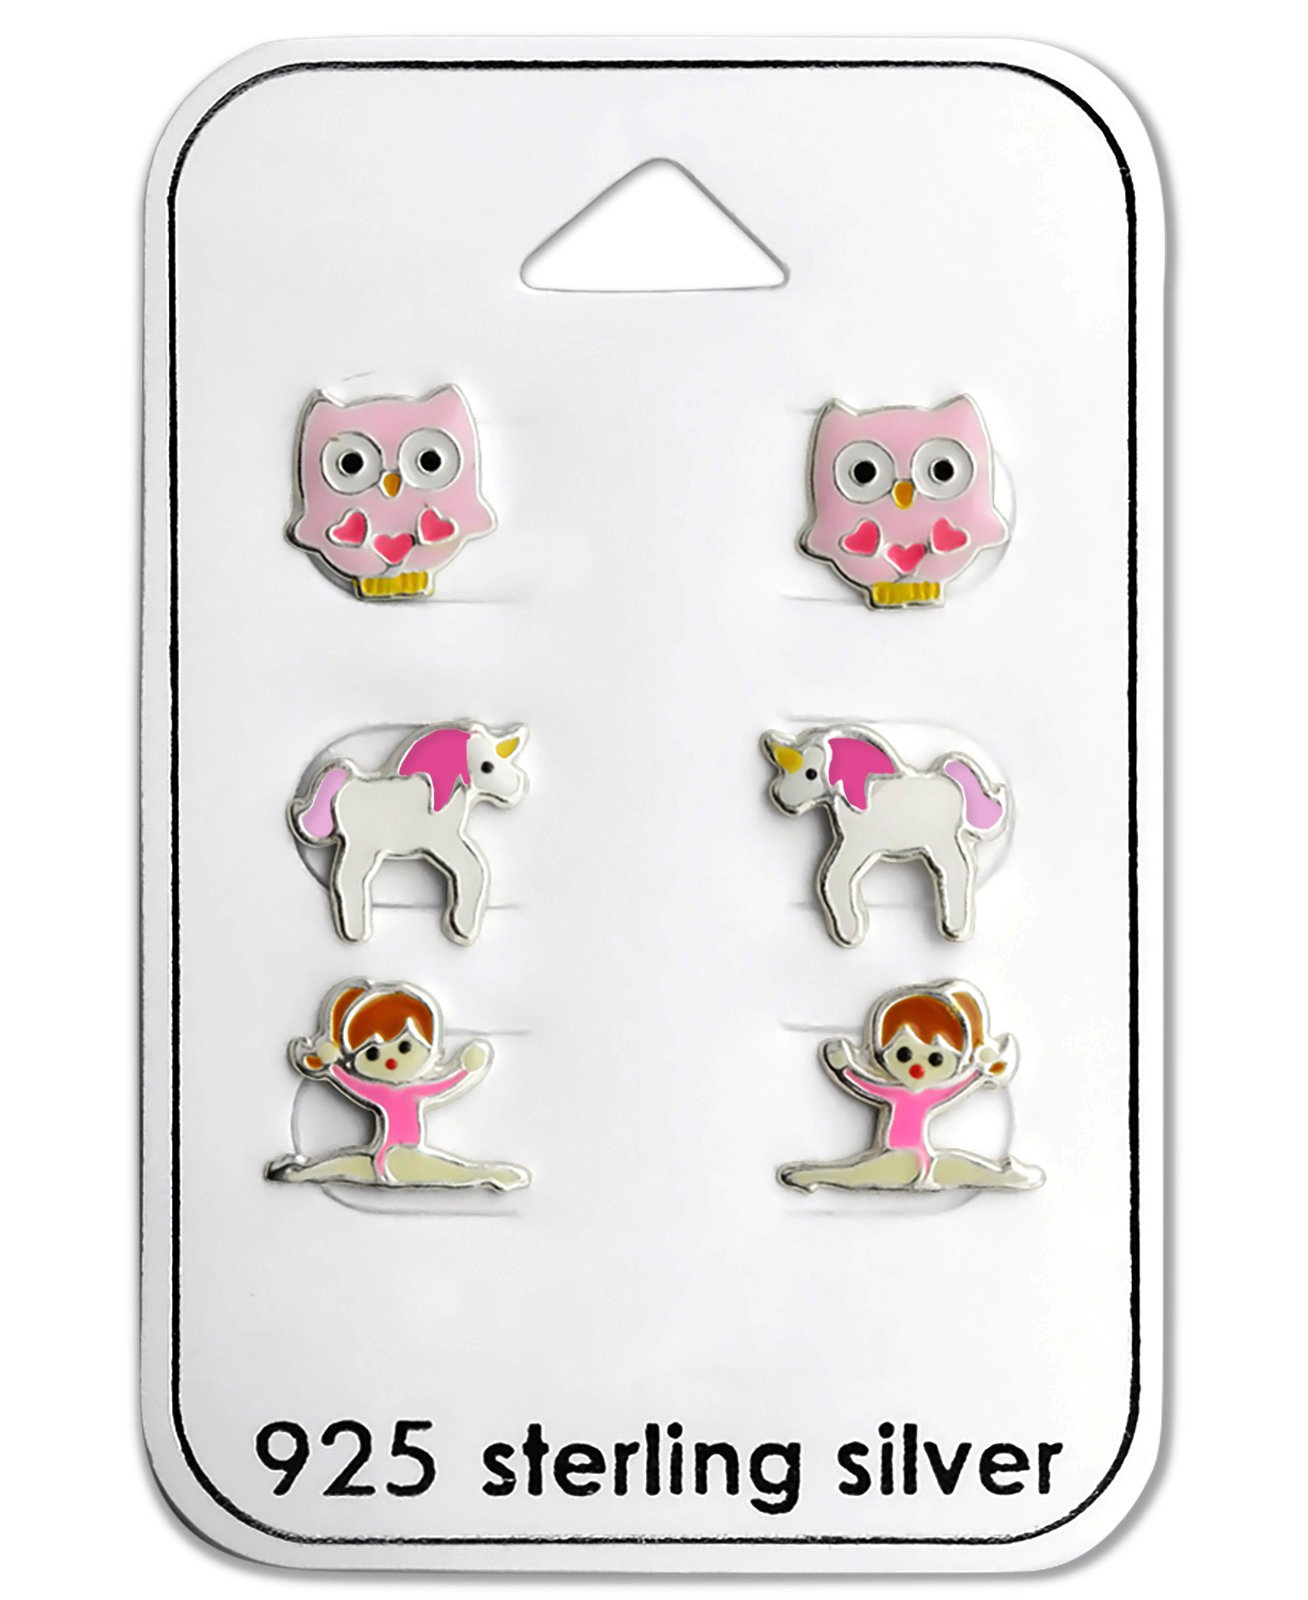 Best Wing Jewelry .925 Sterling Silver ''Pink Owl, Unicorn and Ballerina/Gymnastic Girl'' Set Children's Stud Earrings (3 Pairs) by Best Wing Children's Earrings (Image #2)